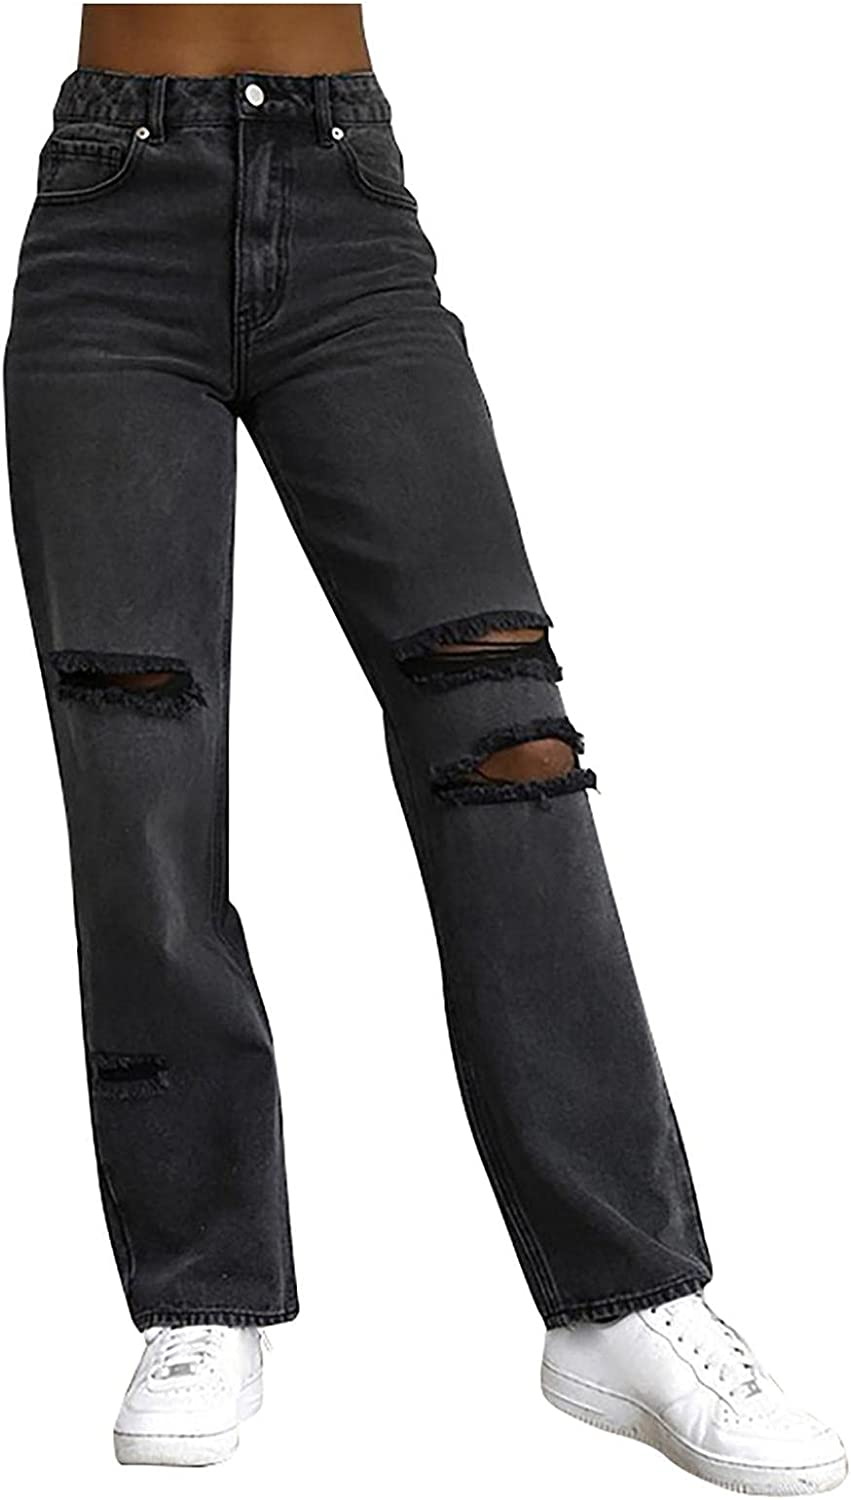 FUNEY Women's Casual High Rise Destroyed Boyfriend Jeans Washed Straight Wide Leg Distressed Ripped Baggy Denim Pants